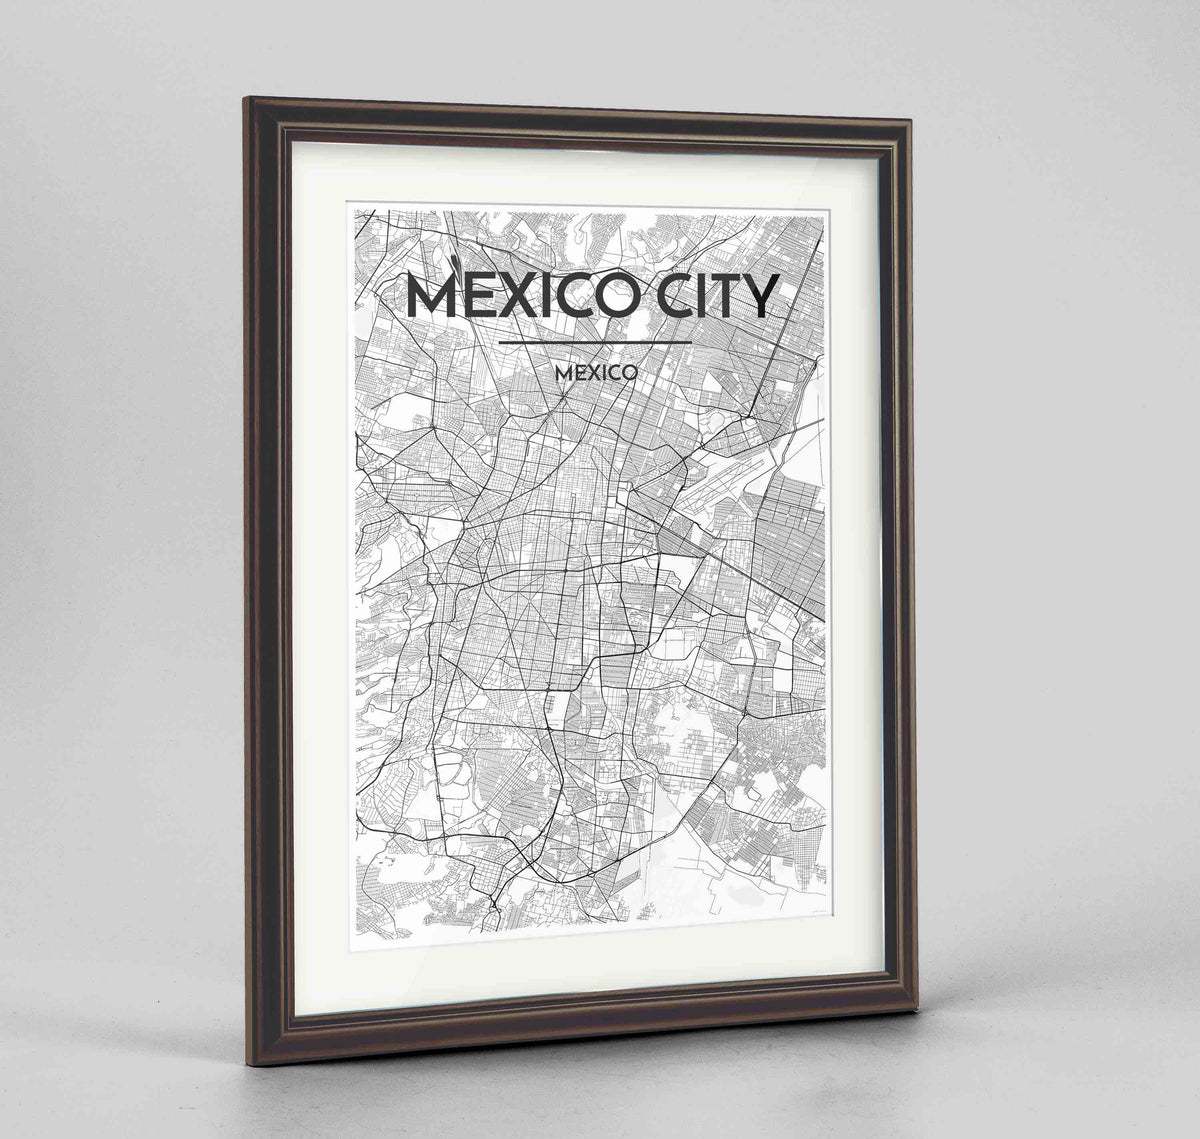 "Framed Mexico City Map Art Print 24x36"" Traditional Walnut frame Point Two Design Group"